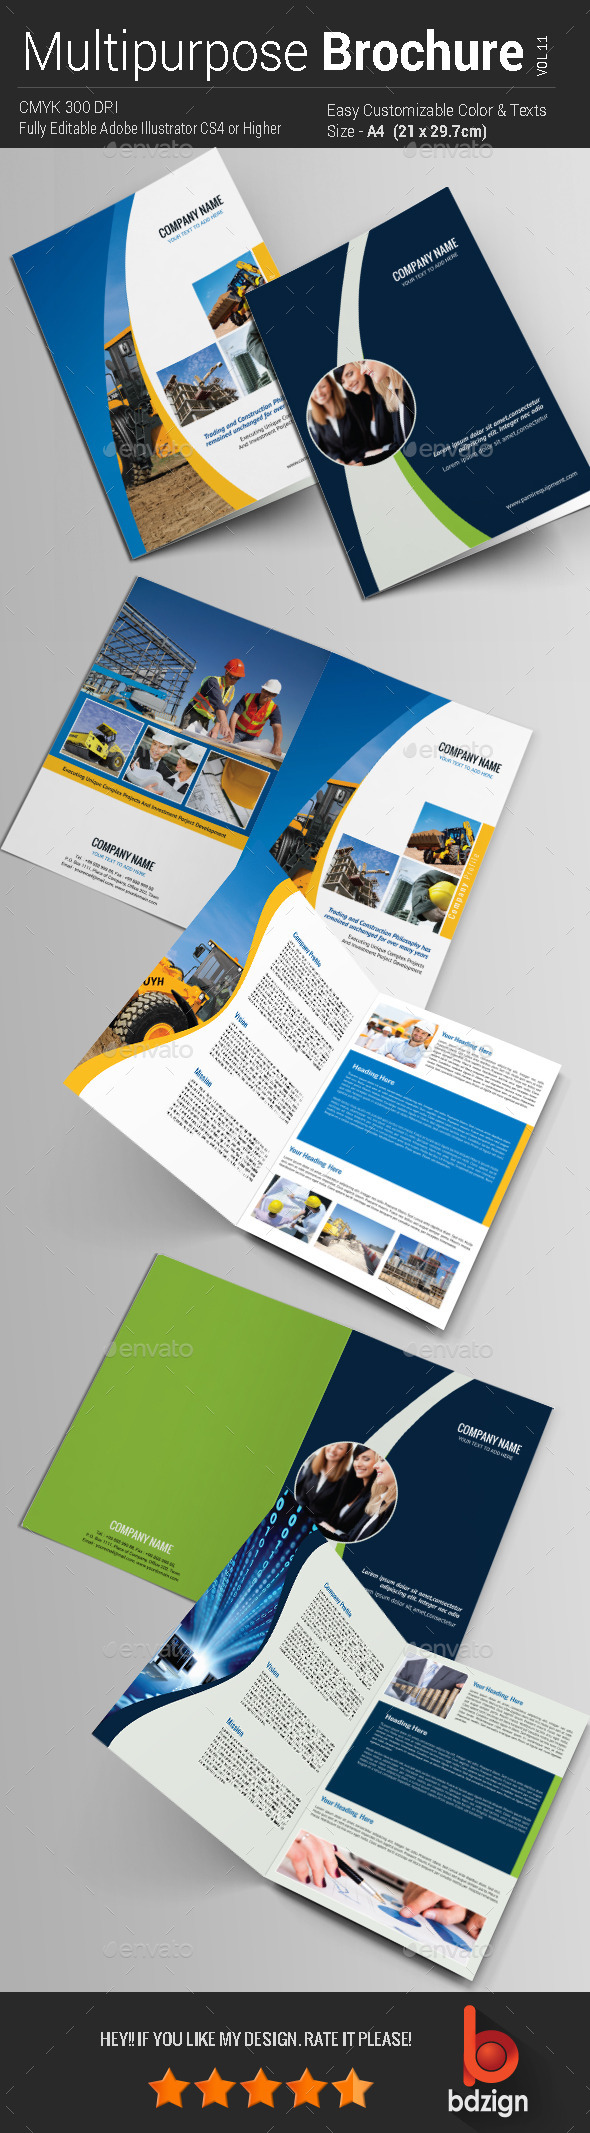 GraphicRiver Multipurpose Bi-fold Brochure Vol-11 11252890